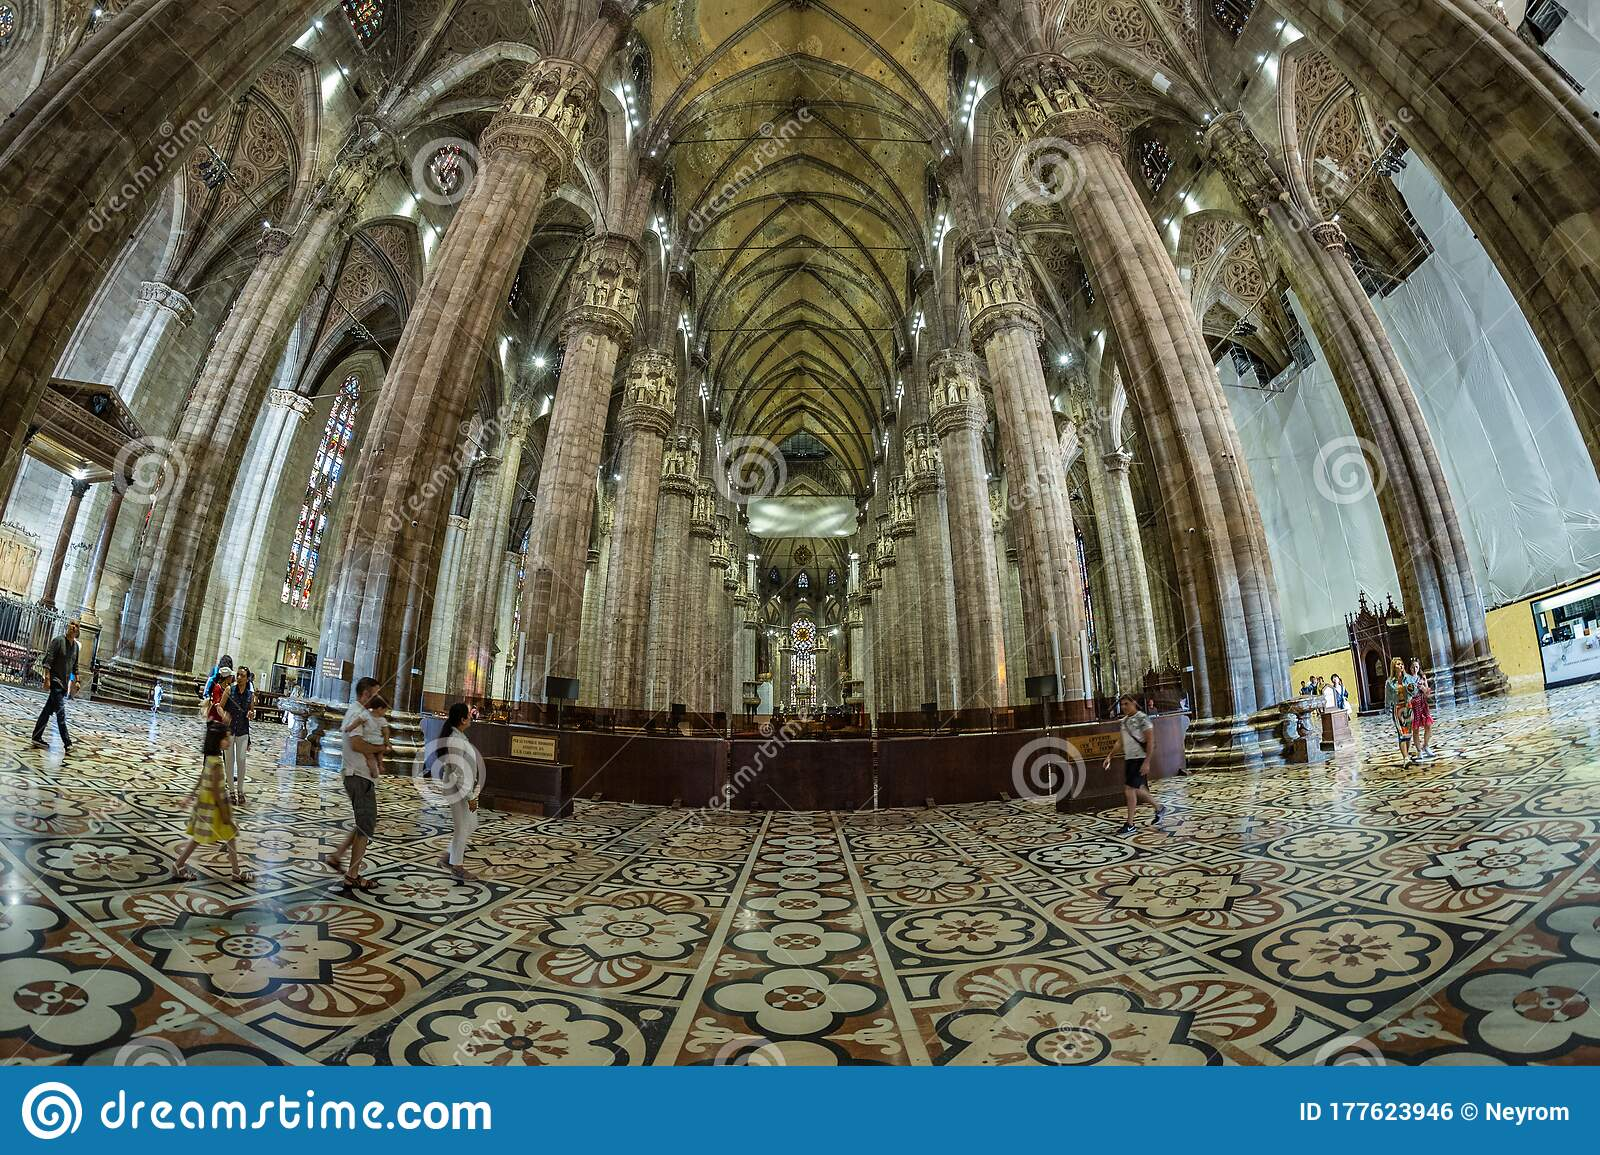 Milan Italy Aug 1 2019 Interior Of The Famous Cathedral Duomo Di Milano On Piazza In Milan Italy Fish Eye Lens Shot Editorial Photo Image Of Church Architecture 177623946